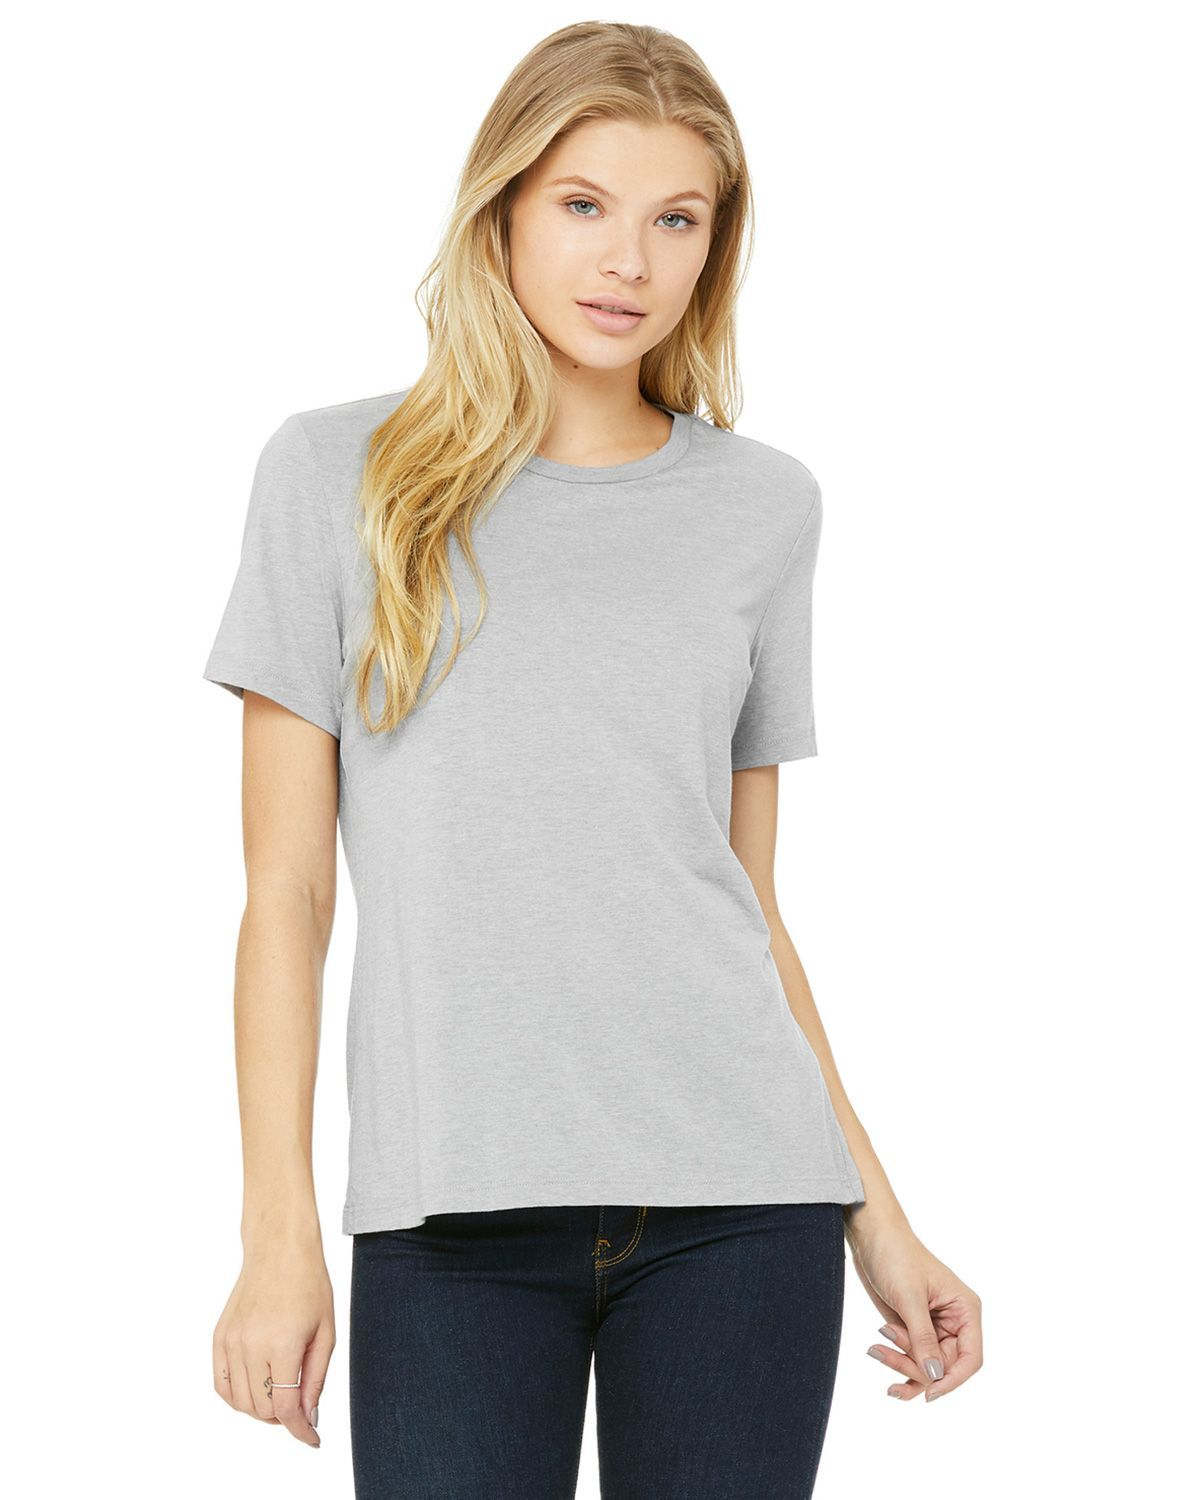 Bella + Canvas B6400 Ladies Relaxed Jersey Short-Sleeve T-Shirt